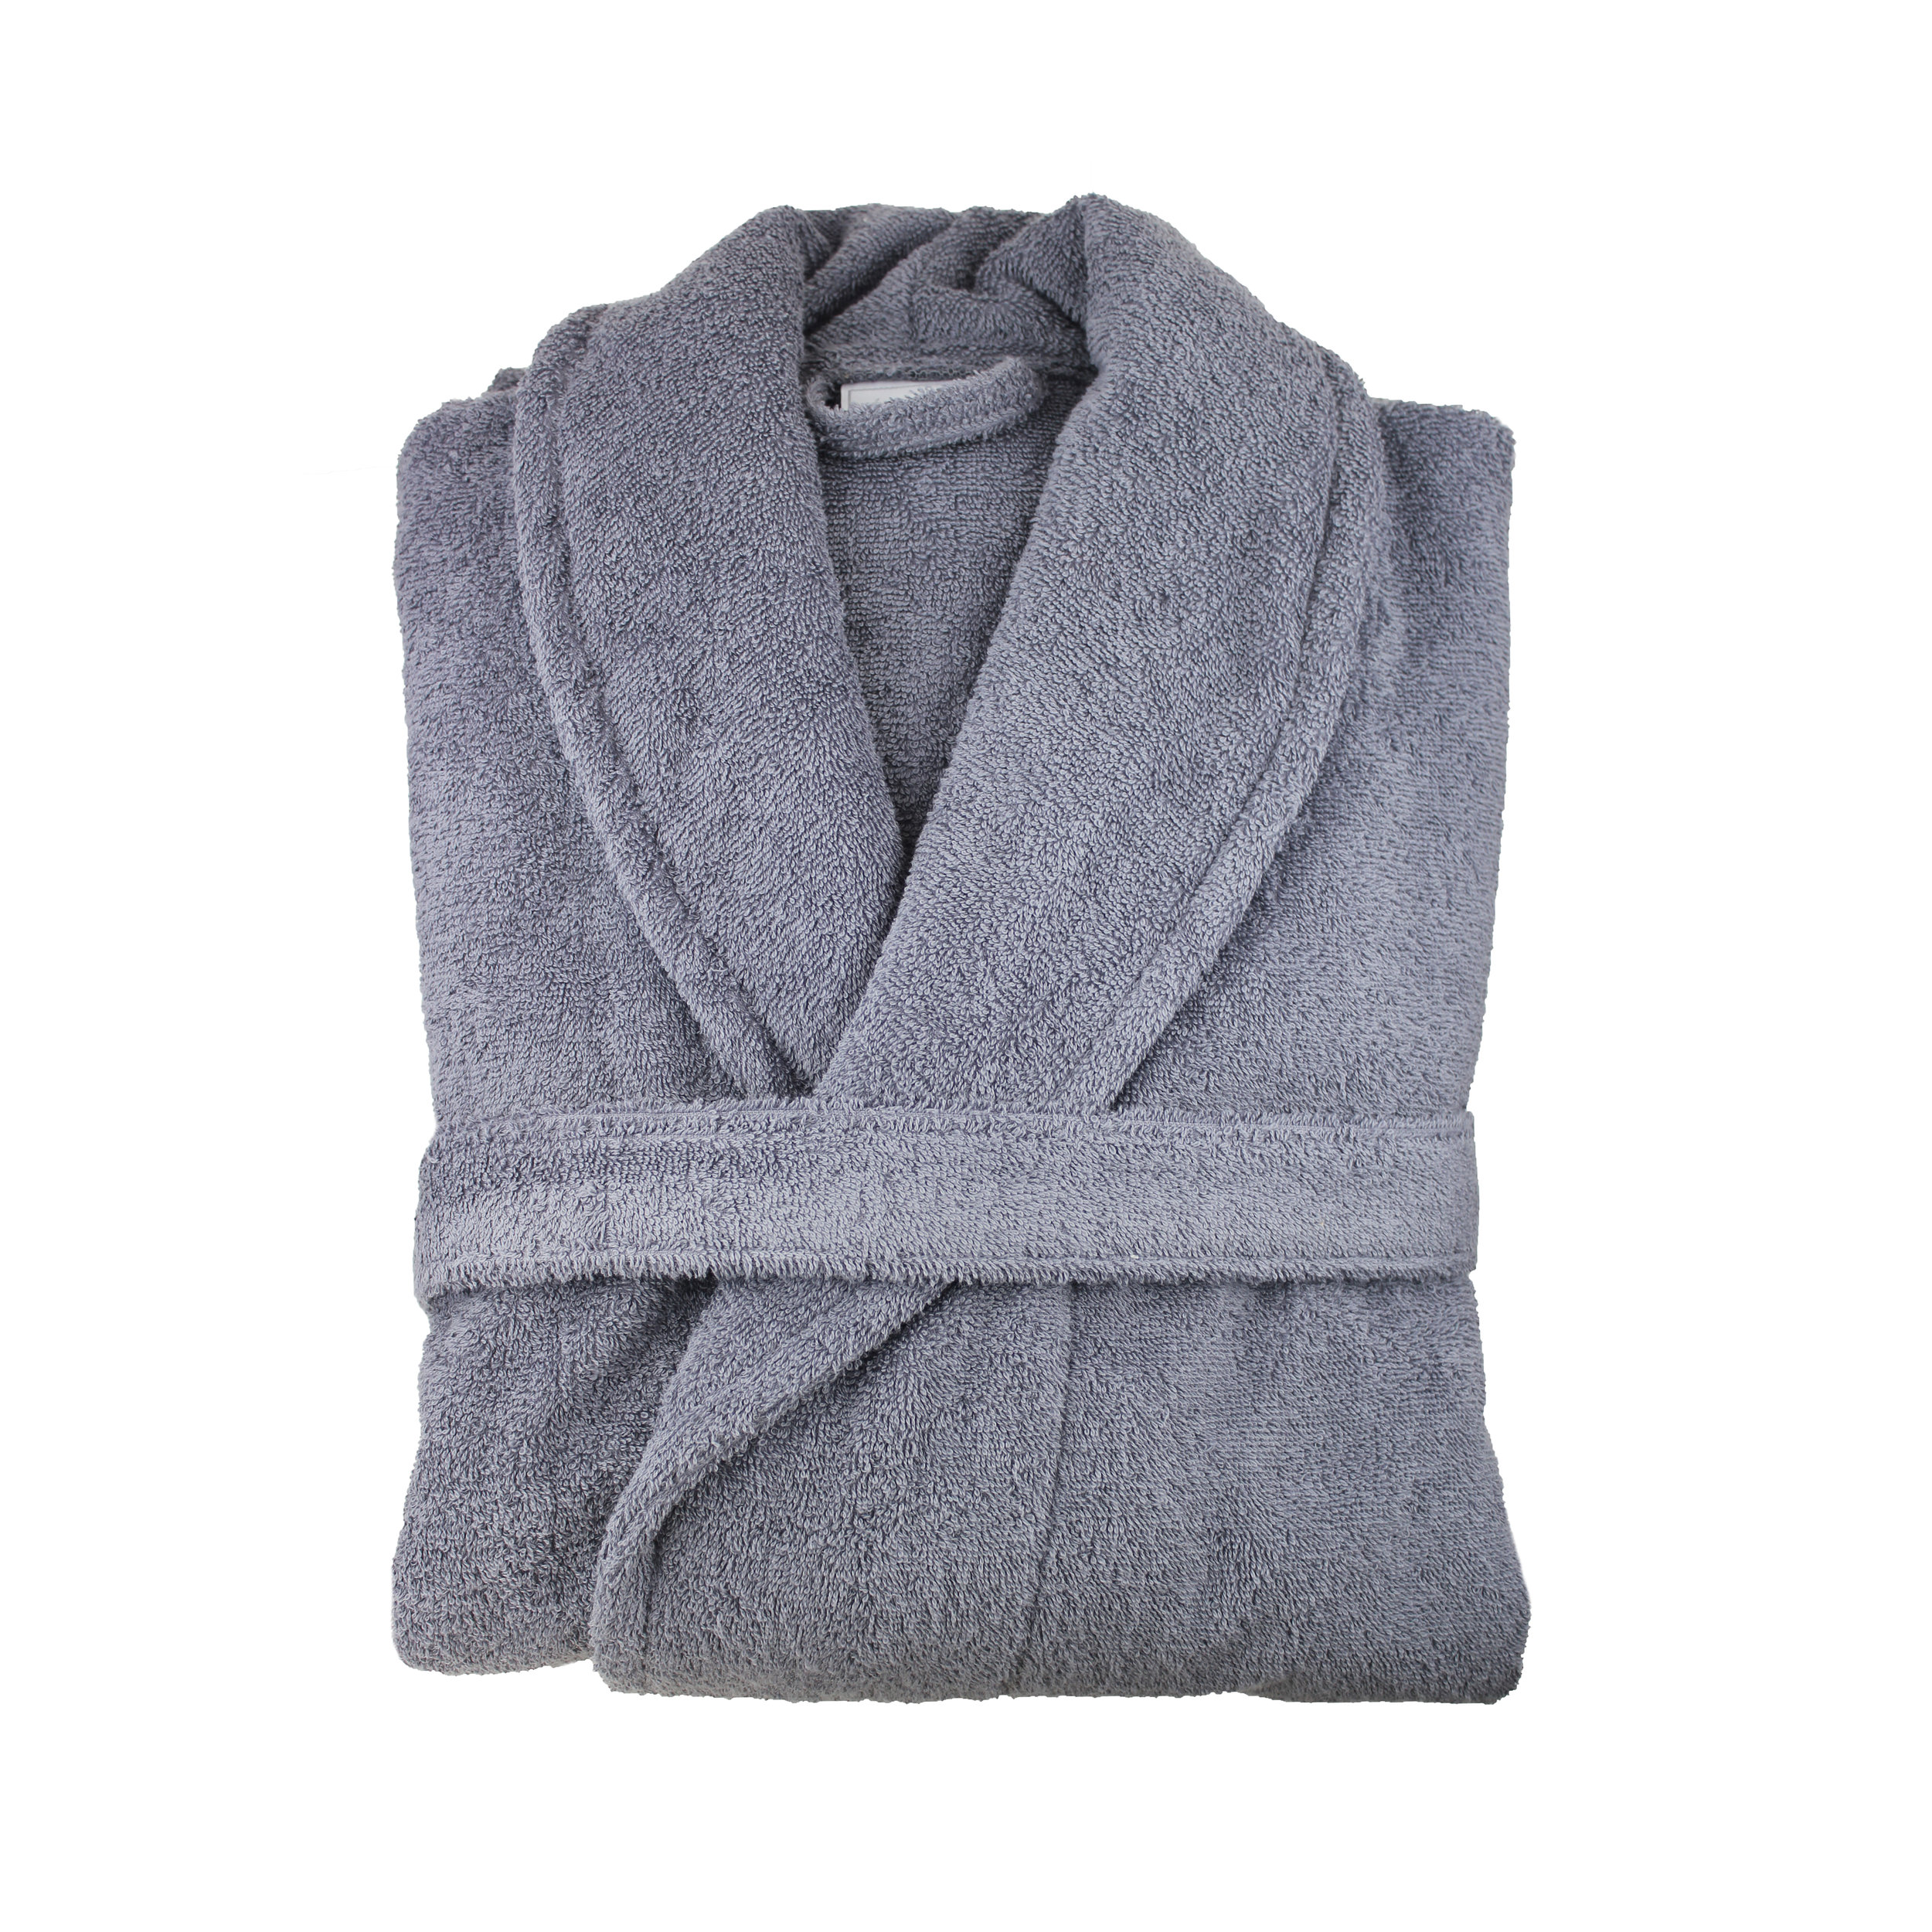 Turkish Bath Robe_Anthra Grey.jpg